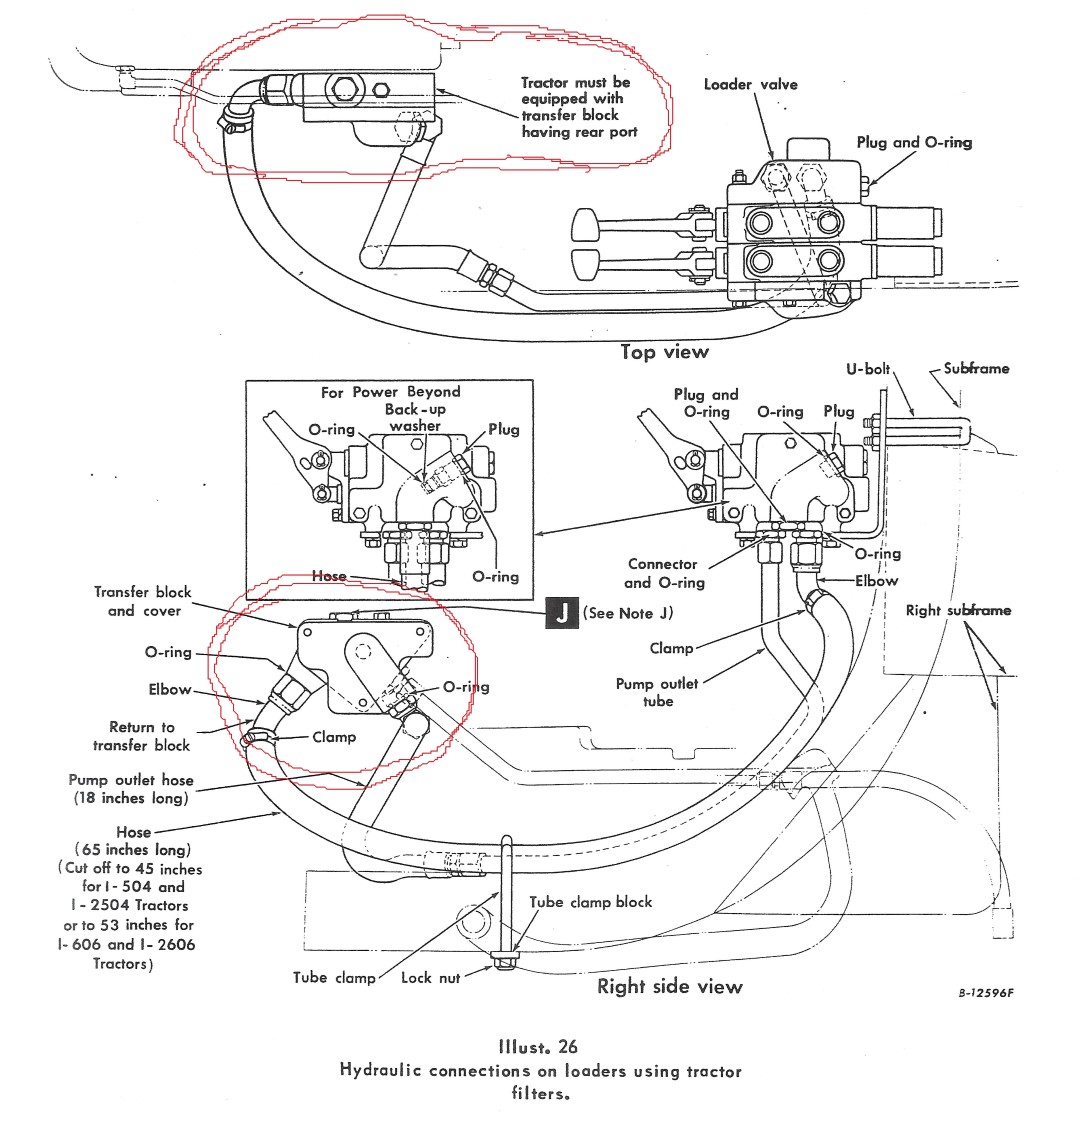 hight resolution of adding remote connecters to ih 504 built without any general ih 504 farmall hydraulic diagram